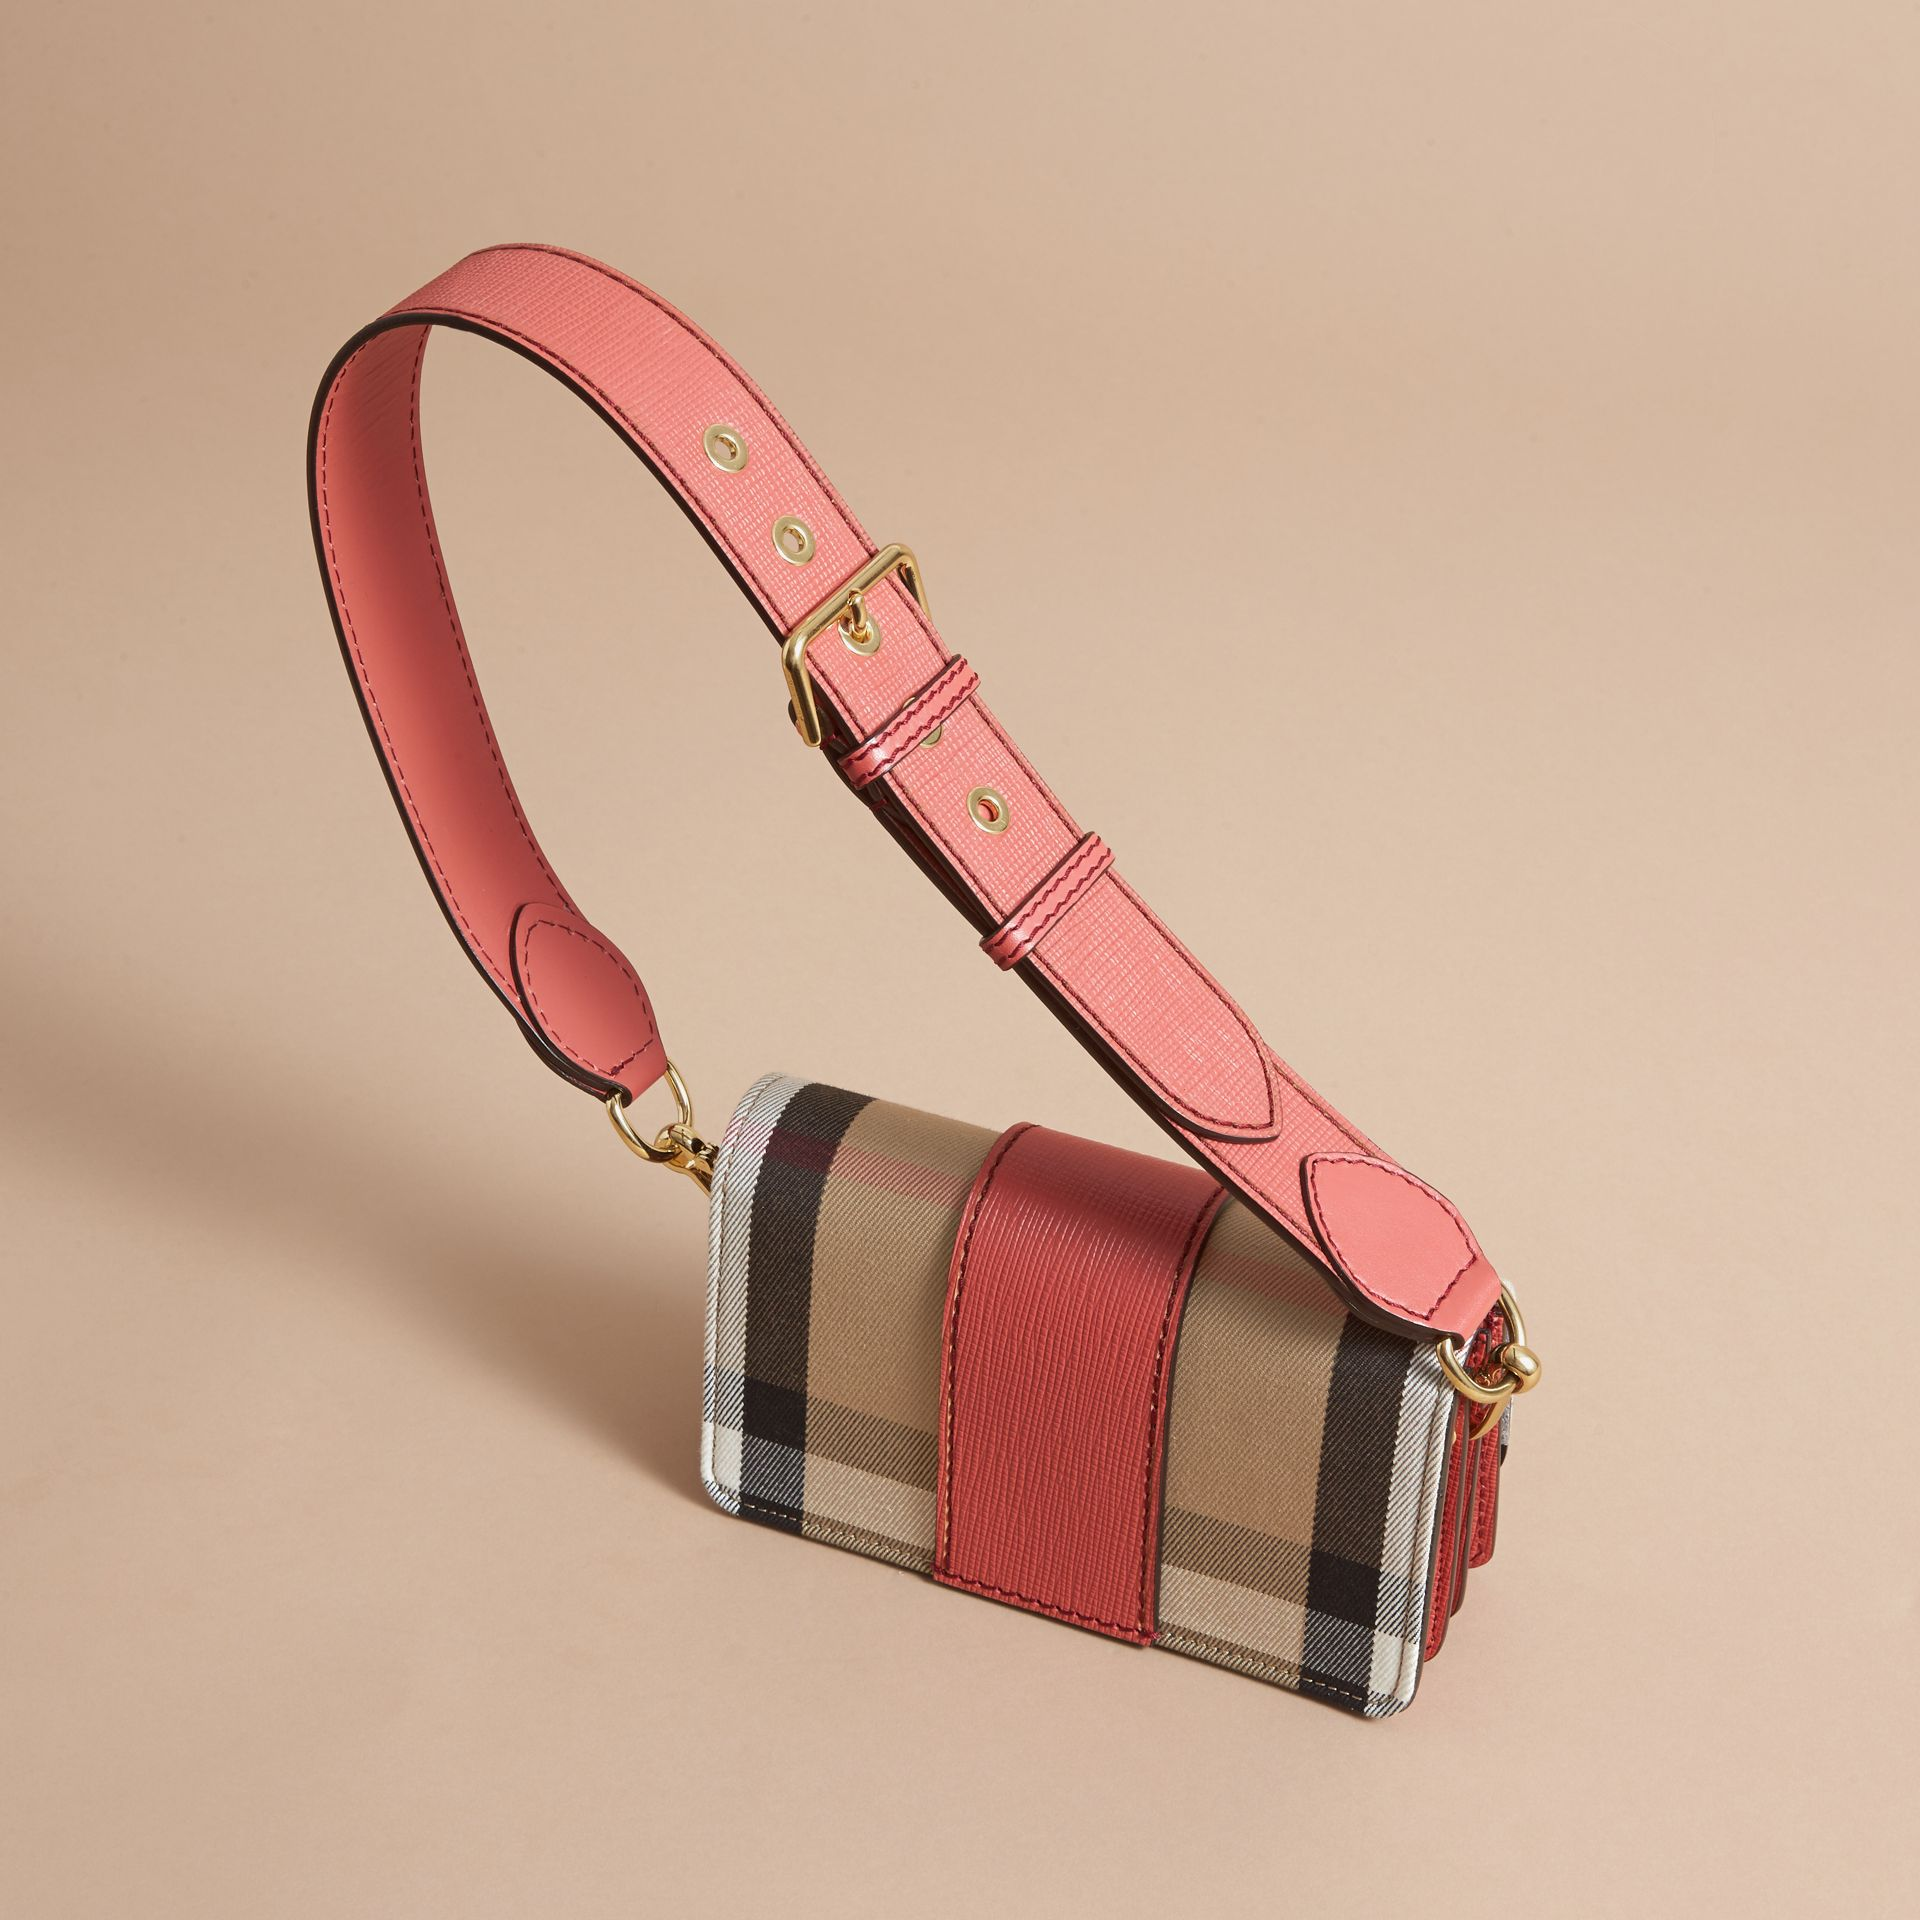 The Small Buckle Bag in House Check and Leather in Cinnamon Red - Women | Burberry - gallery image 4